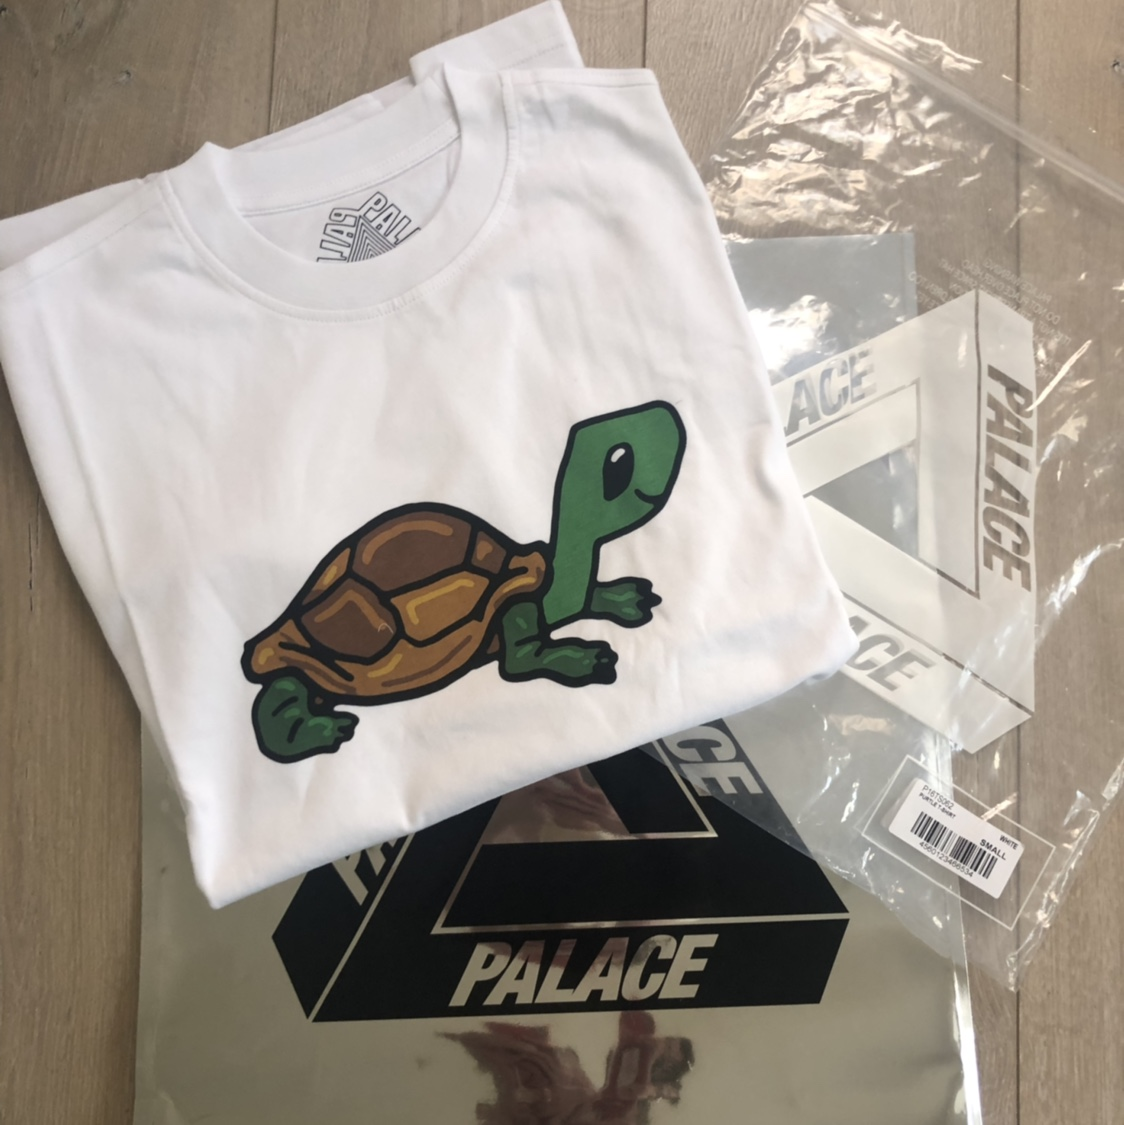 Palace Purtle Tee Bought this item in-store at the    - Depop